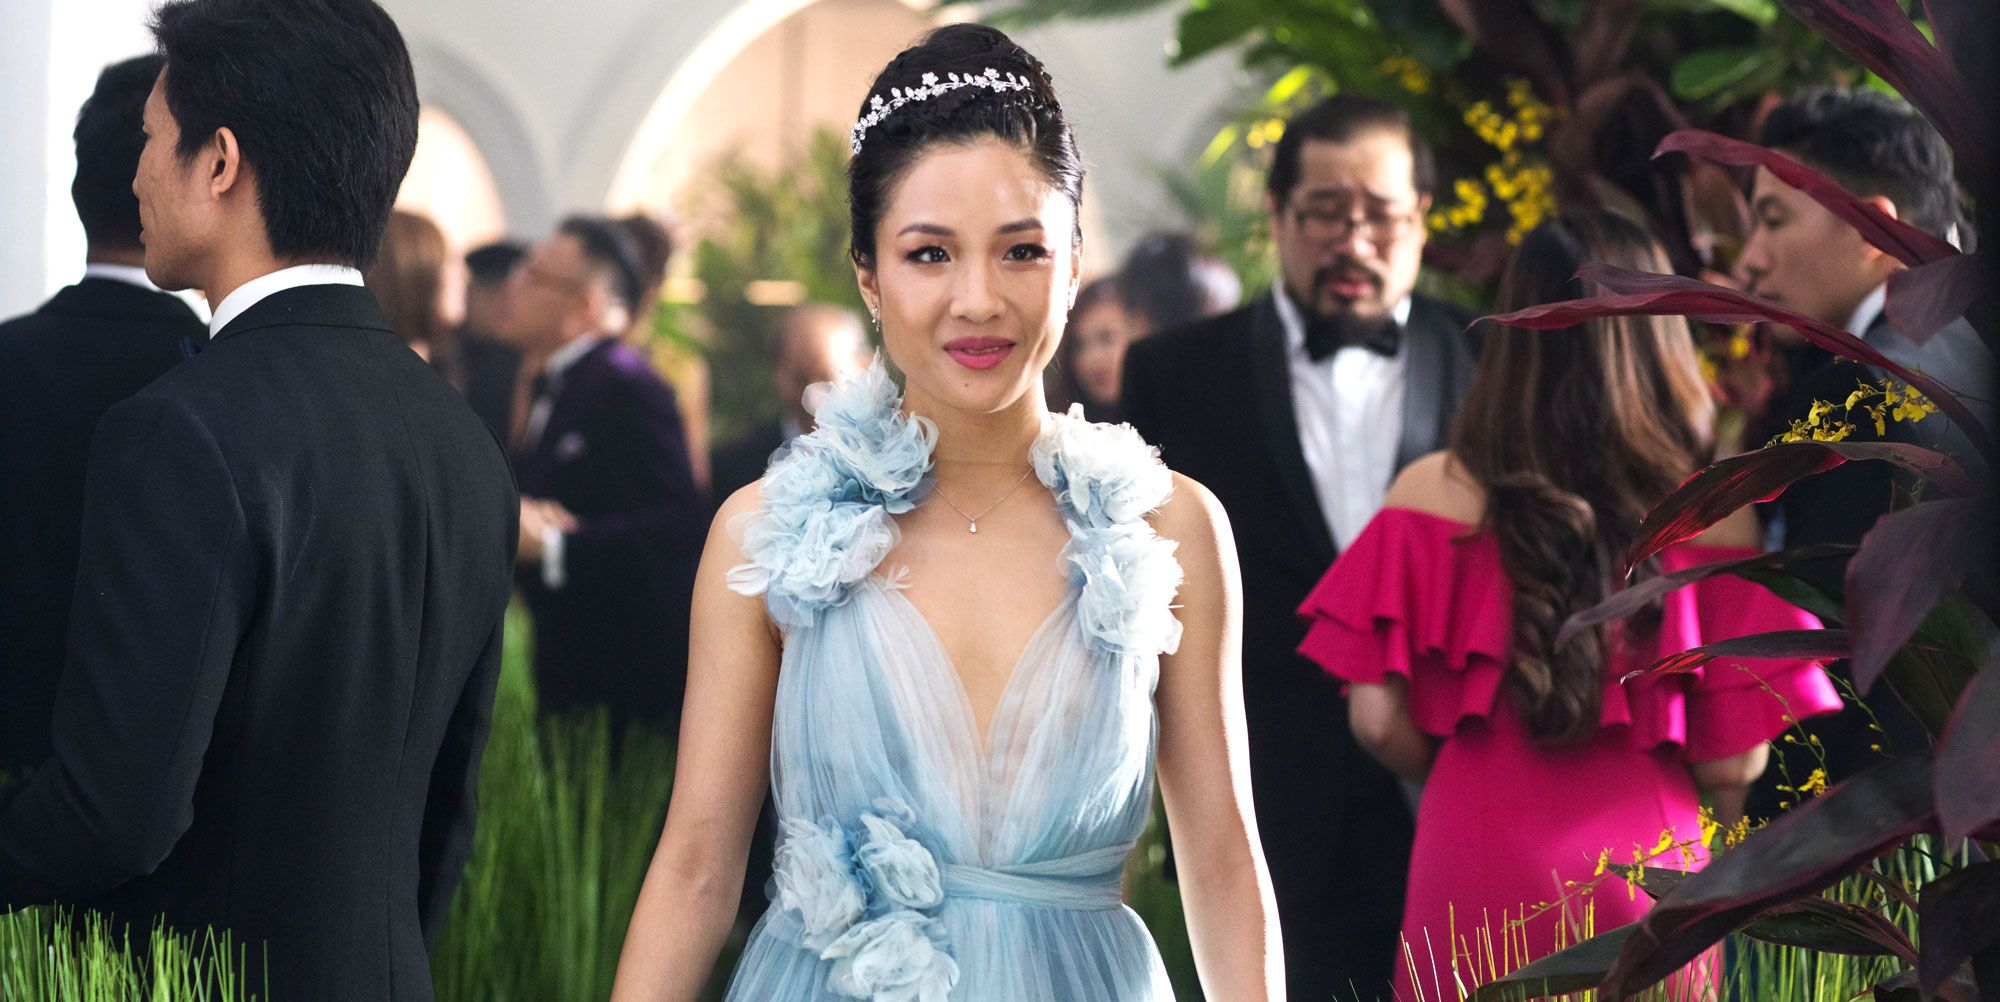 What You Need to Know About the 'Crazy Rich Asians' Movie Sequel